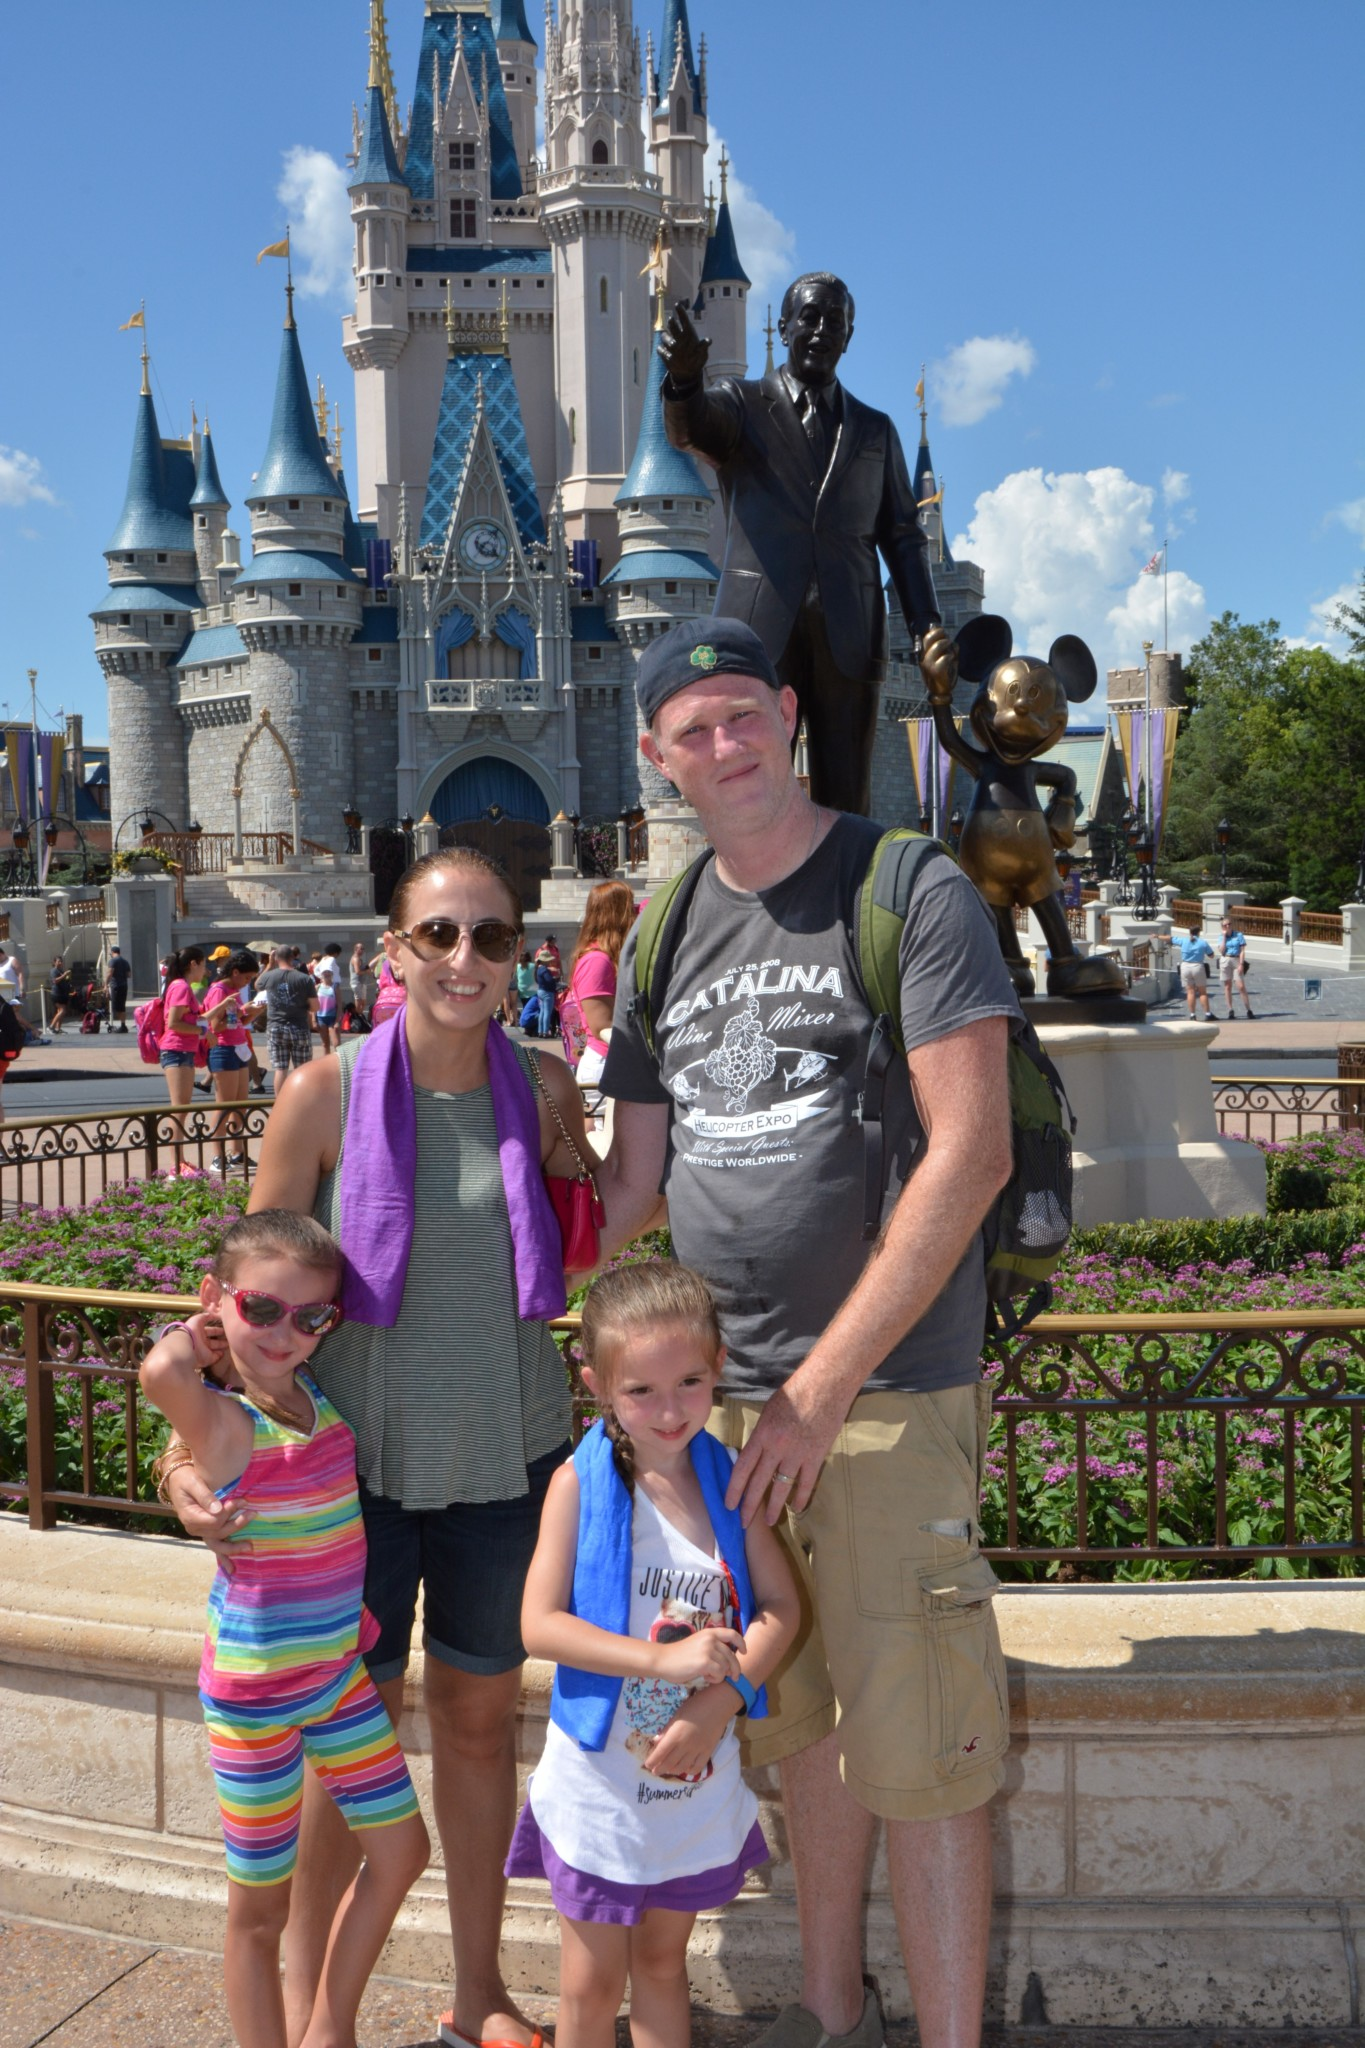 Disney World Posing in front of Cinderella's Castle